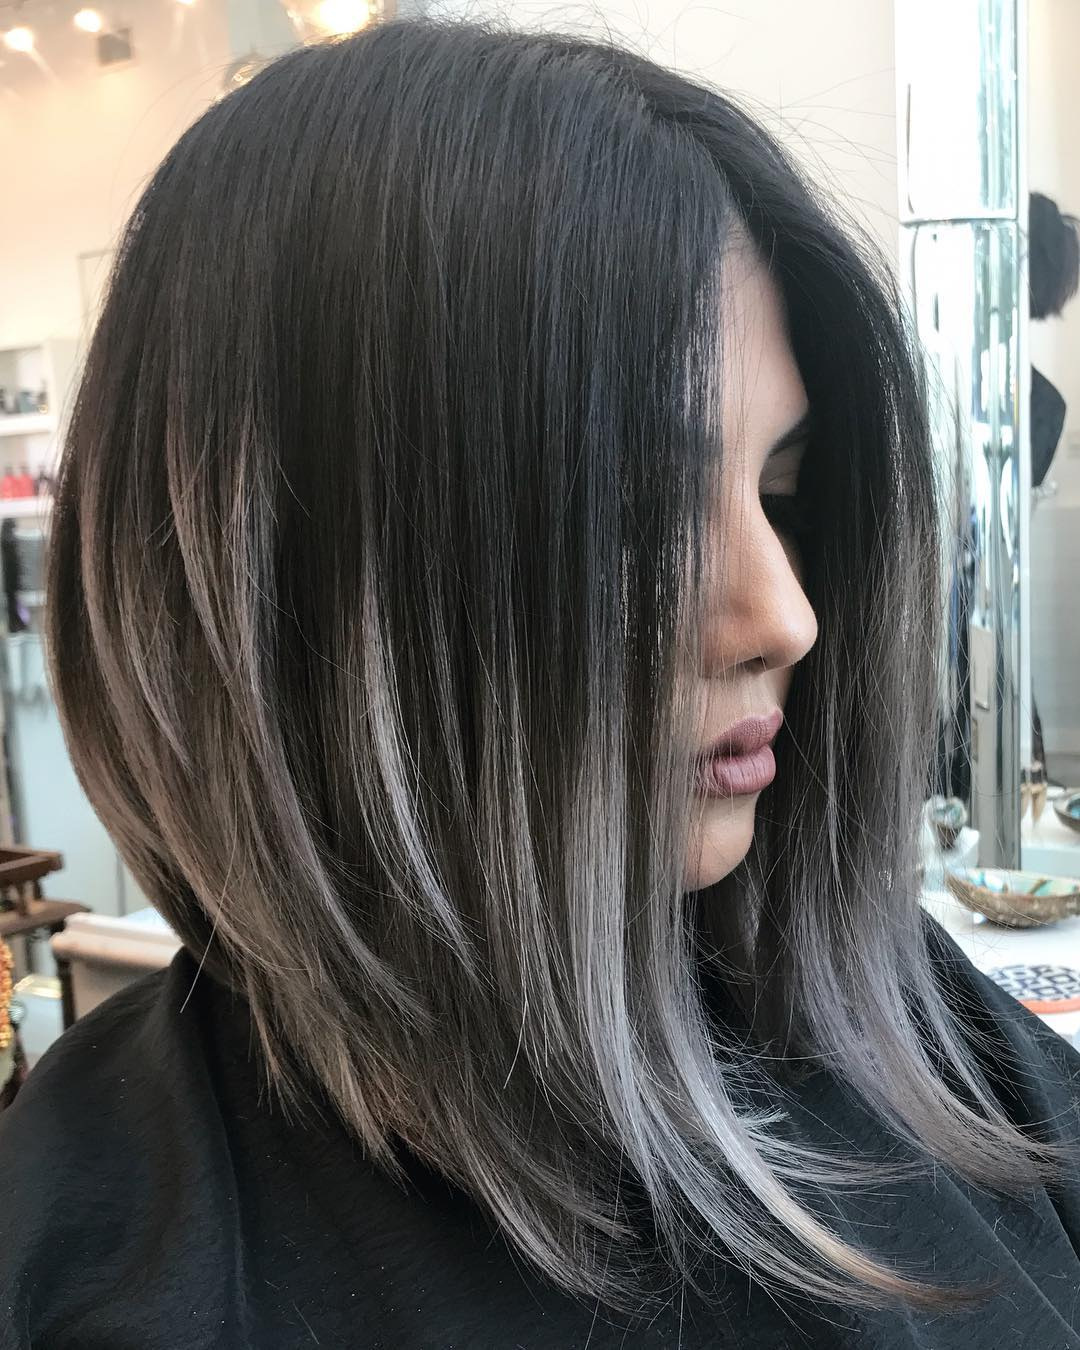 Medium Angled Hairstyle for Thick Hair